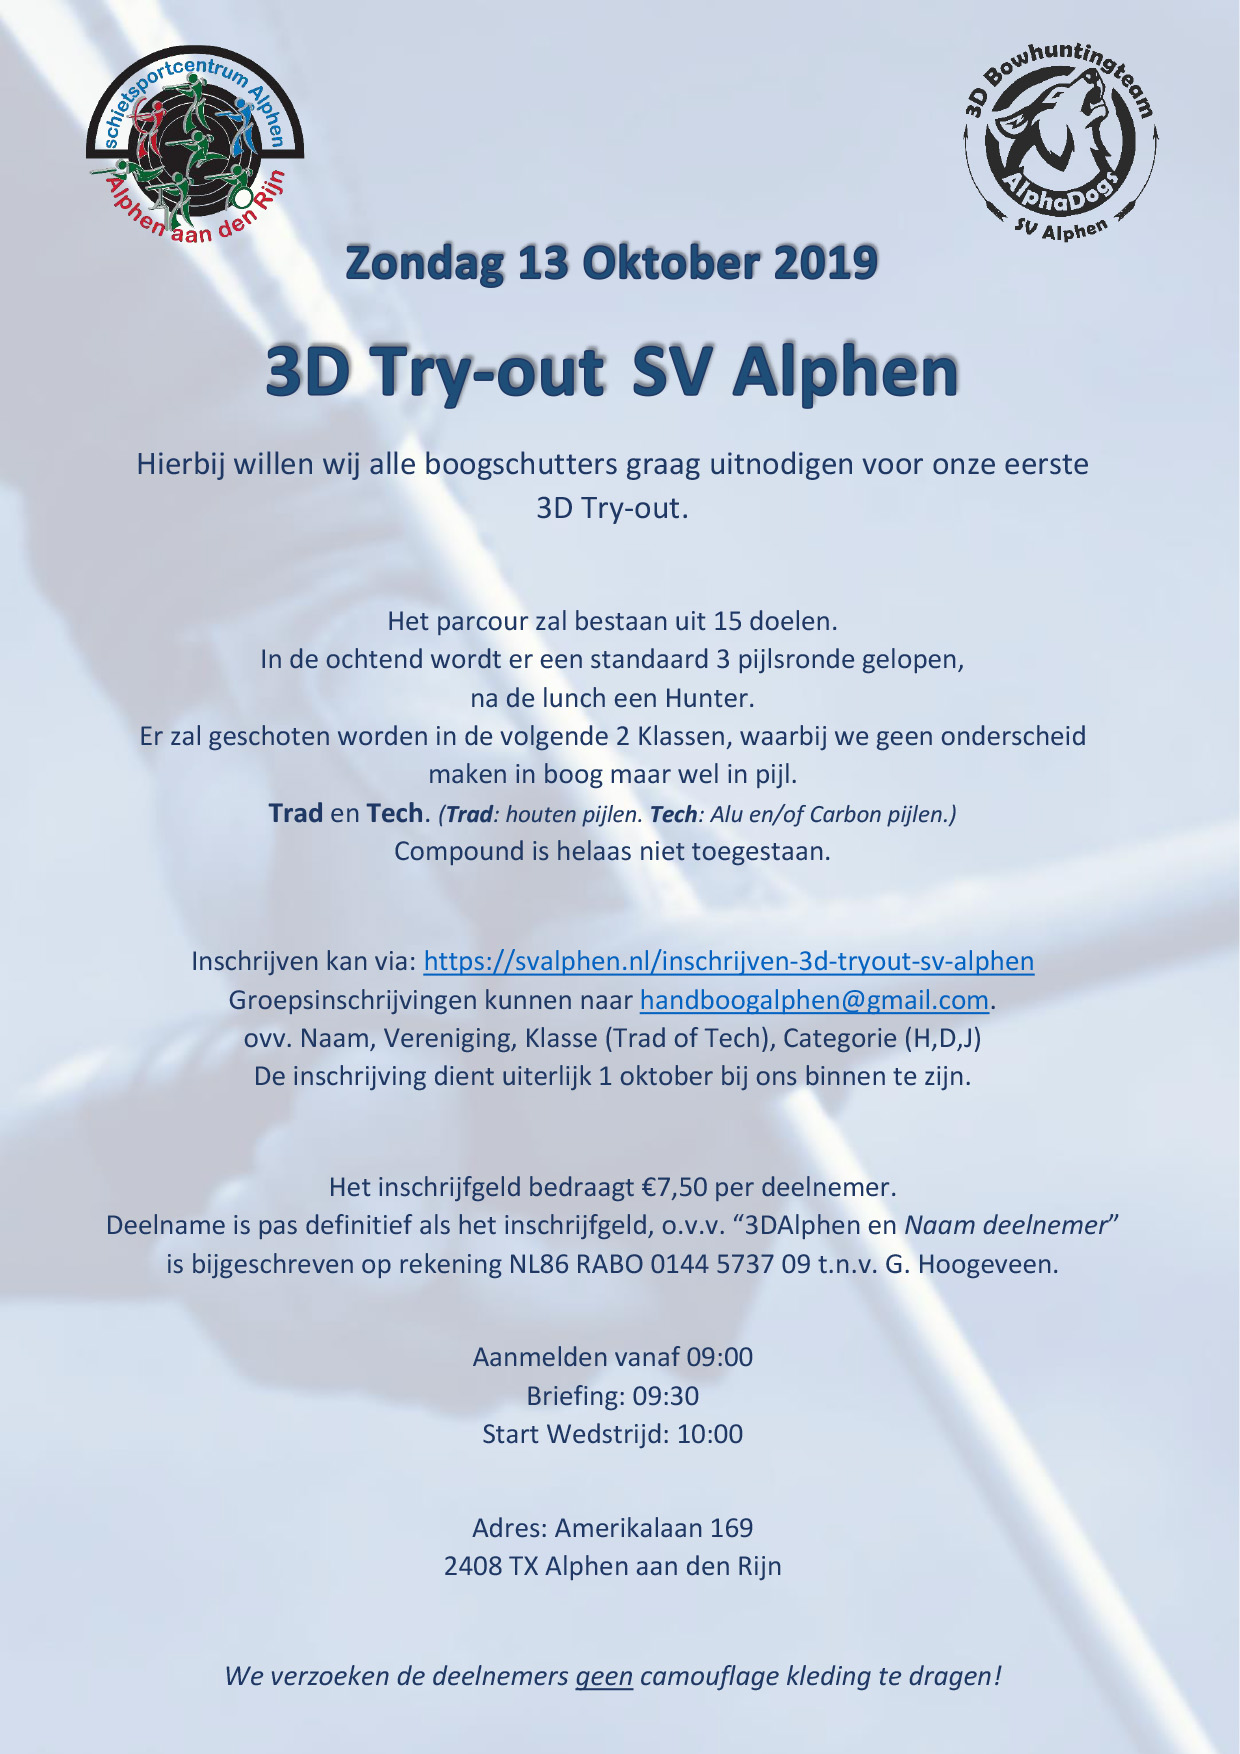 3D Try-out SV Alphen